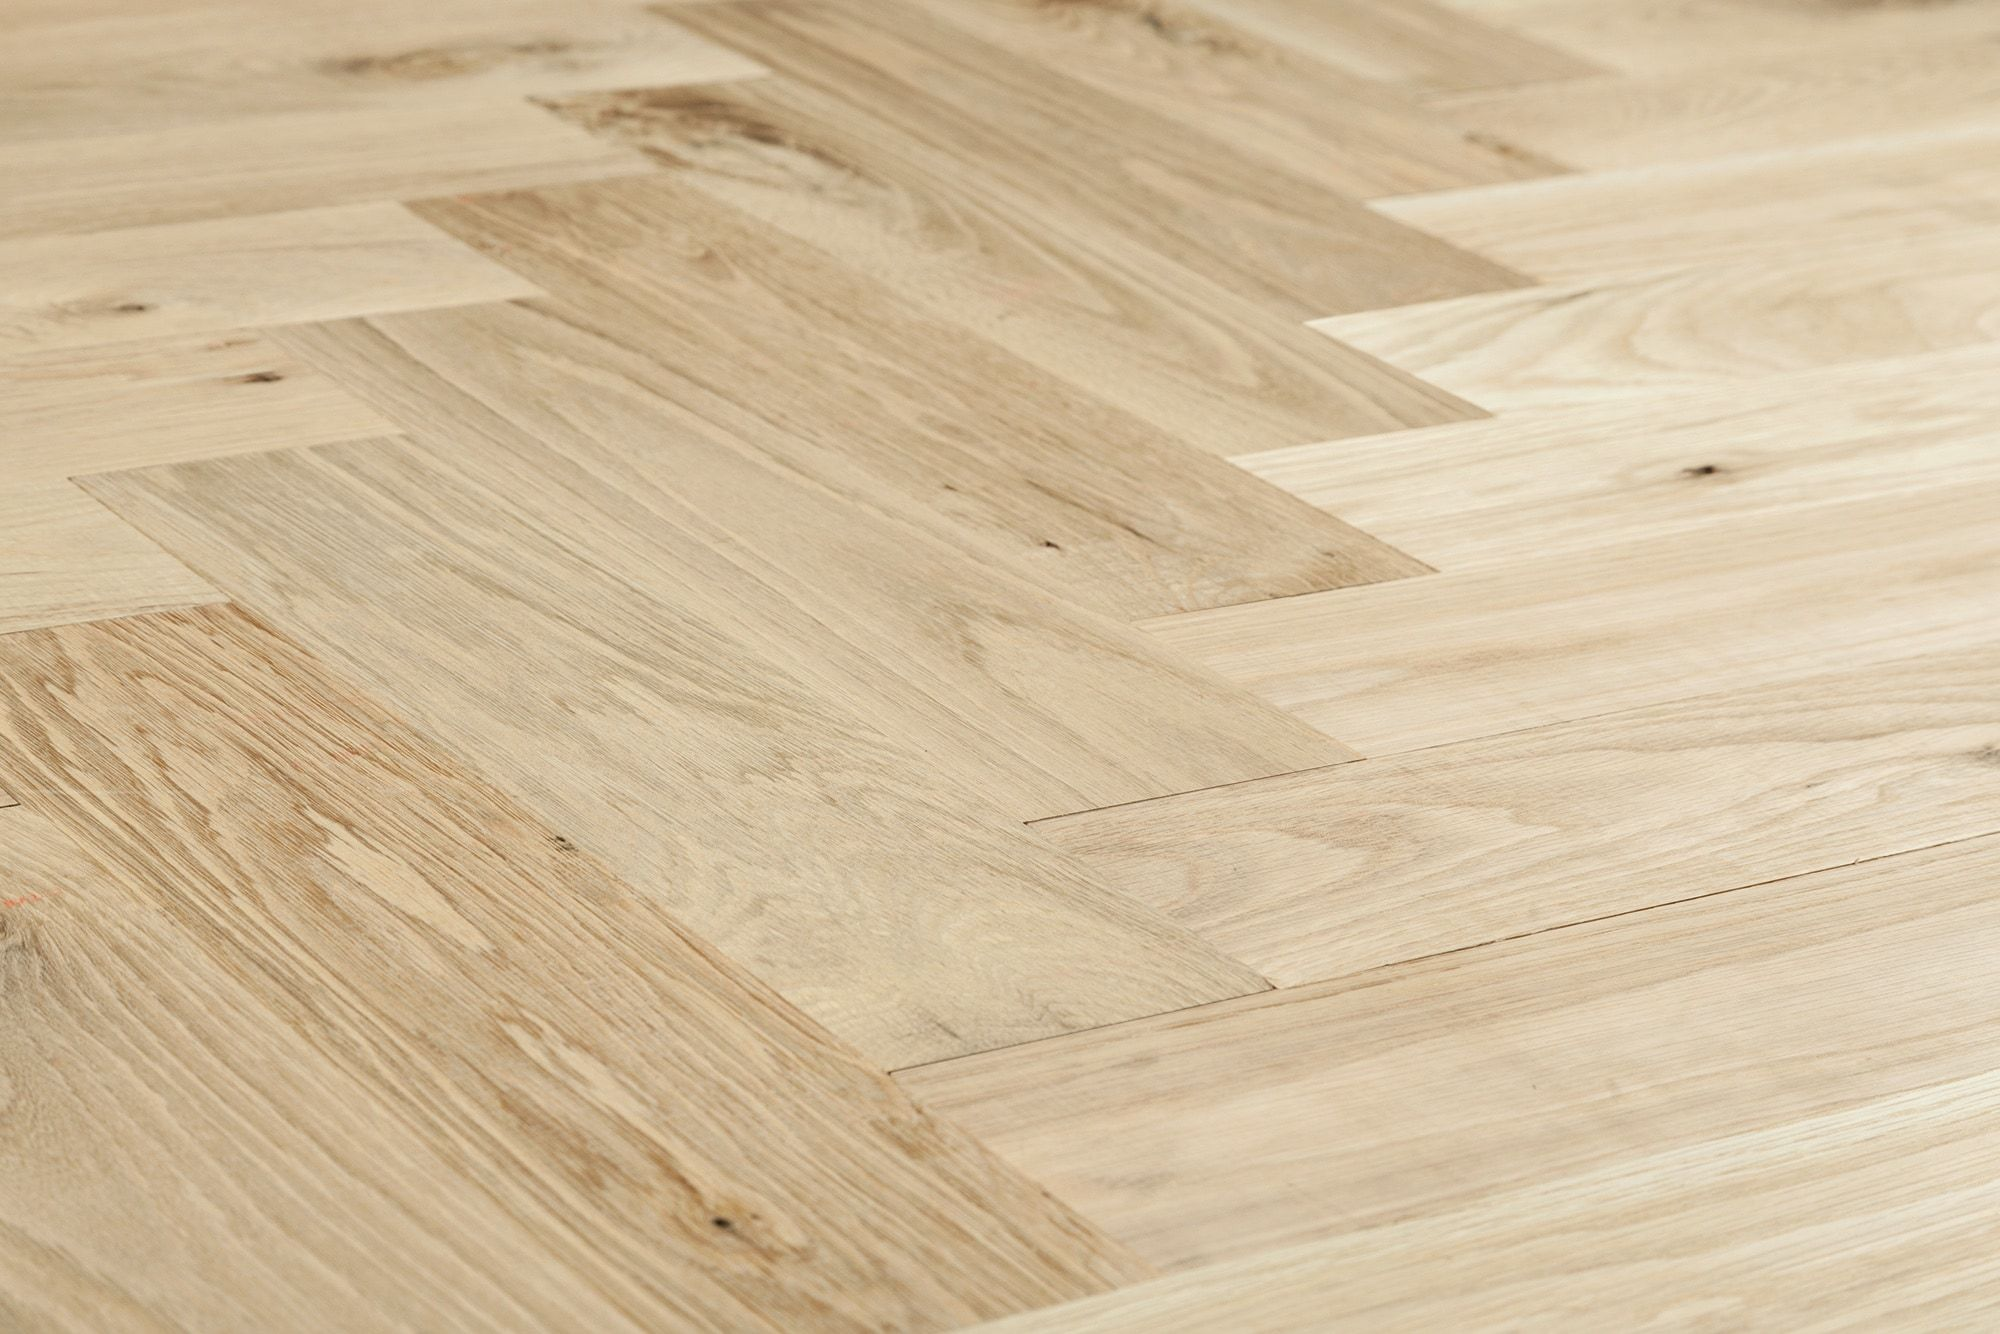 floor floors perfect pictures oak white superb kitchen molding designs very flooring reclaimed natural good